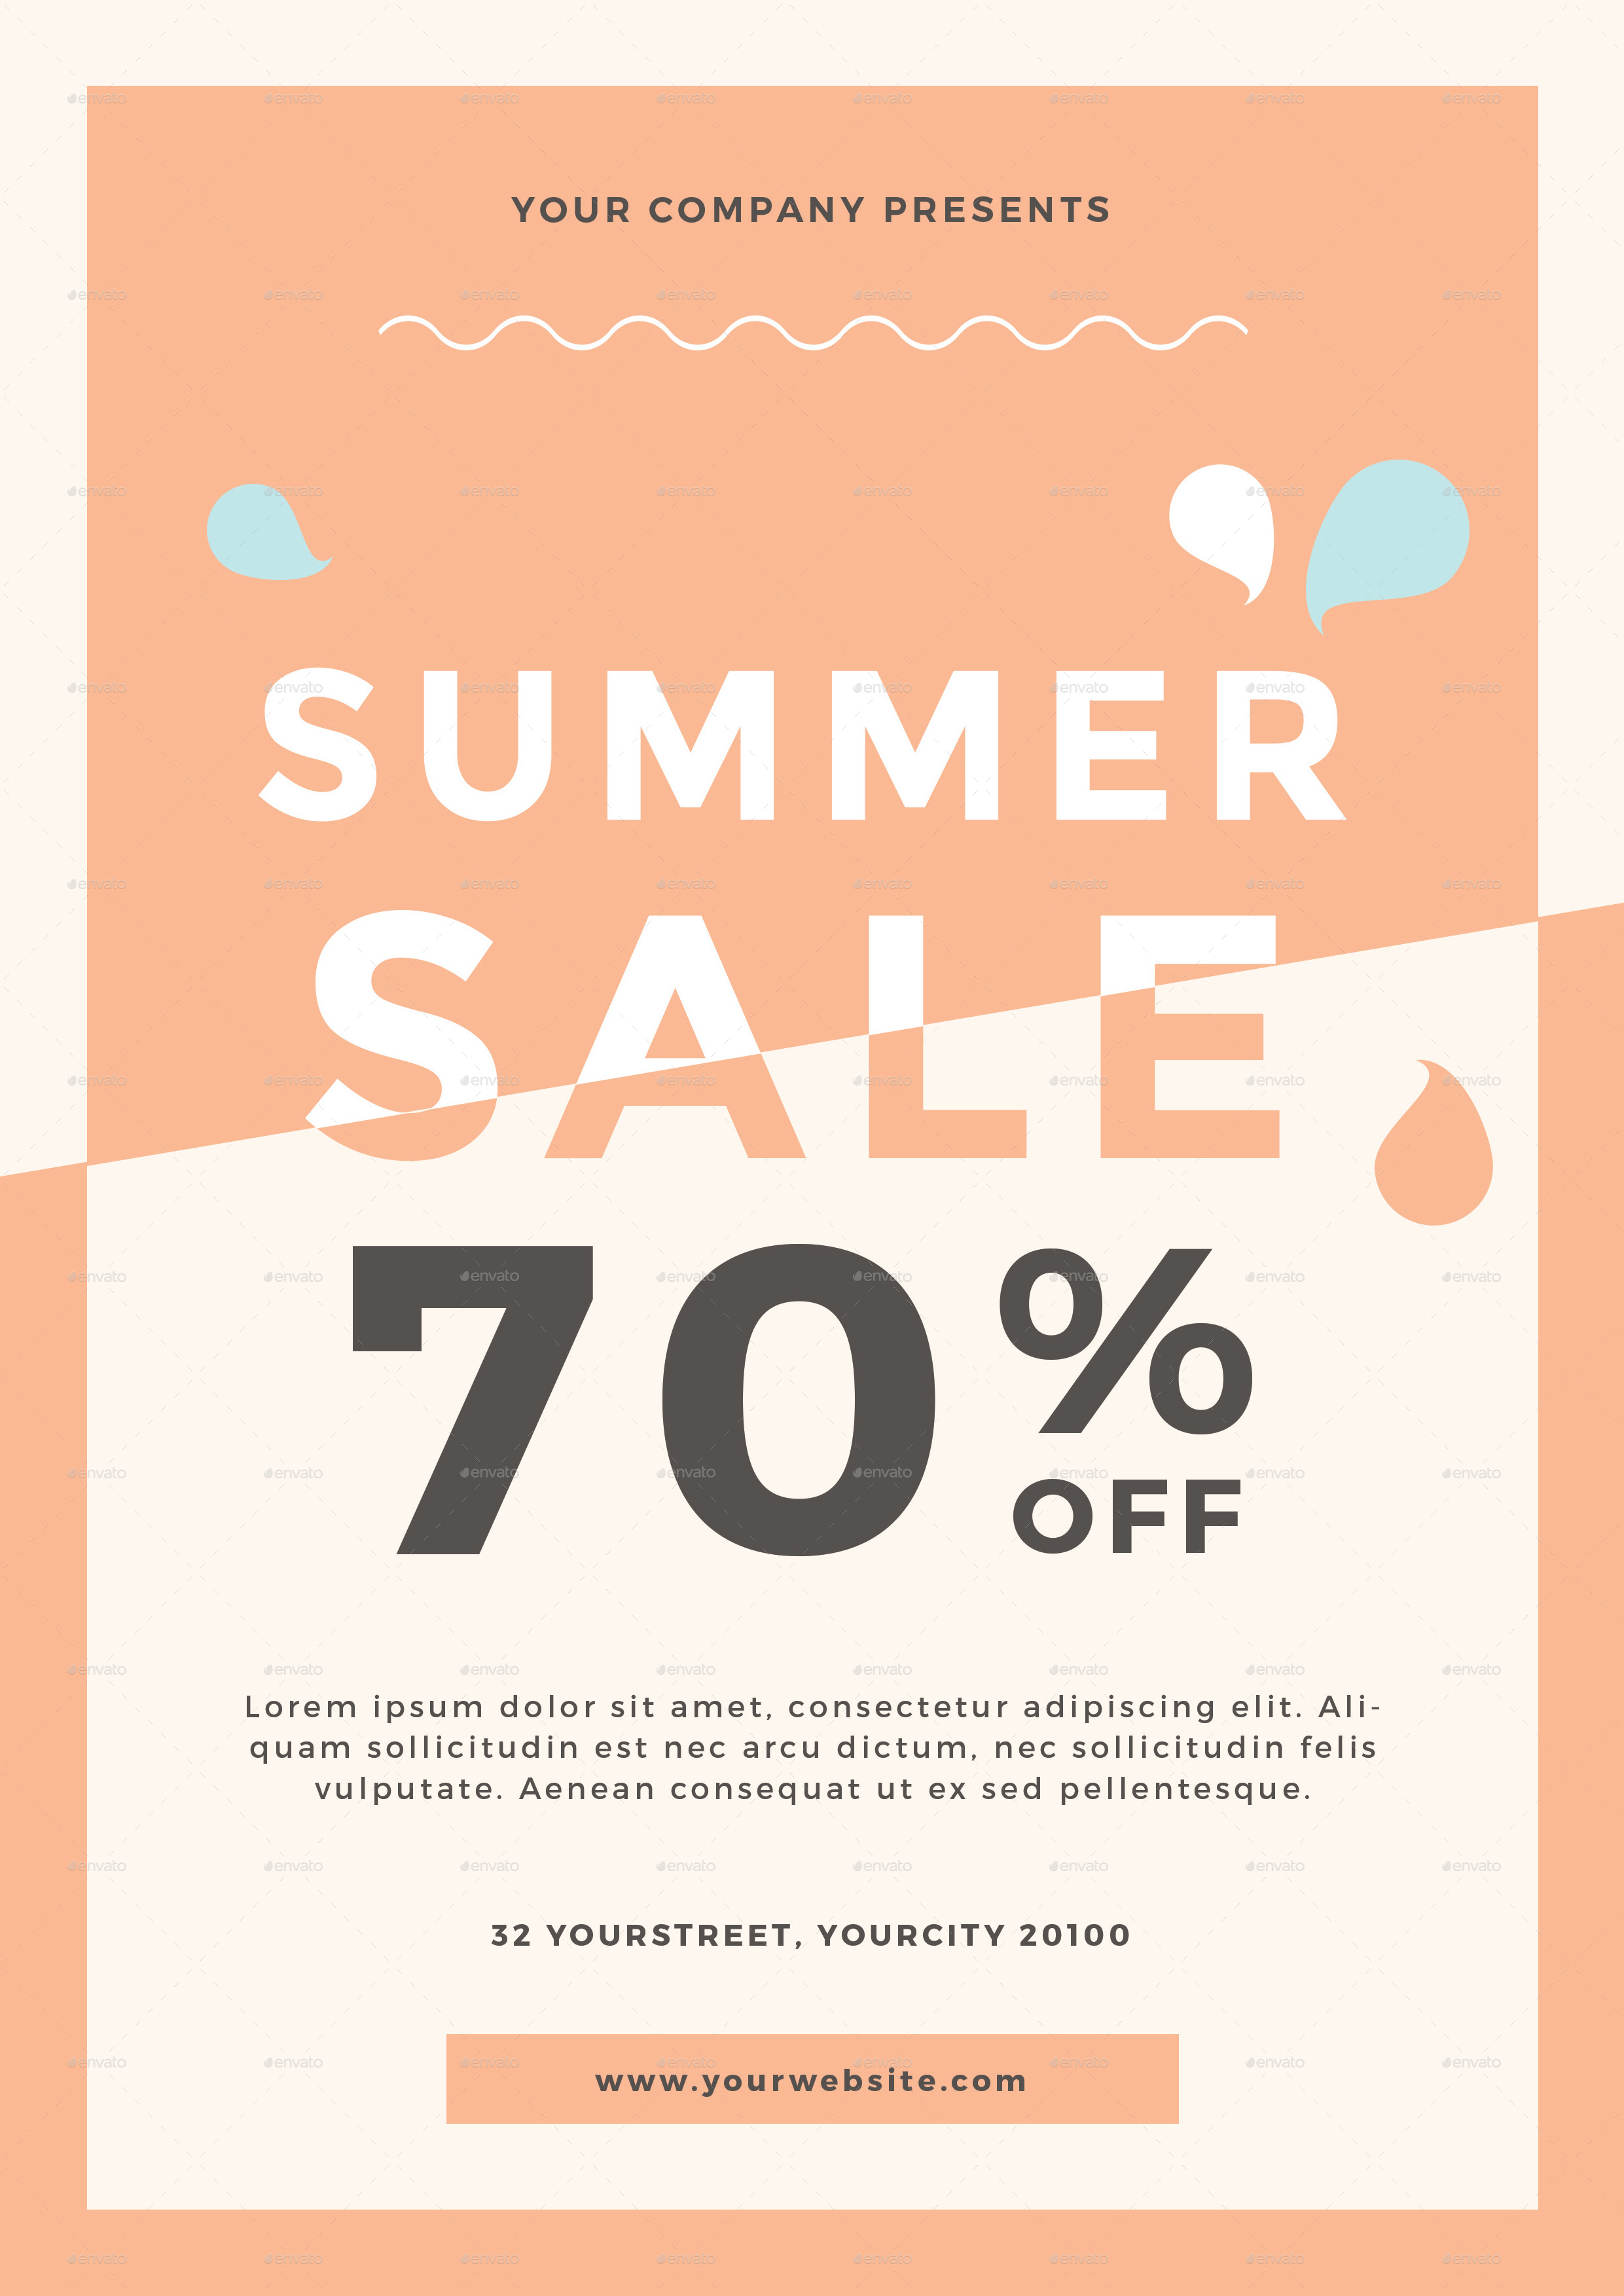 Summer Sale Flyer by infinite78910 | GraphicRiver